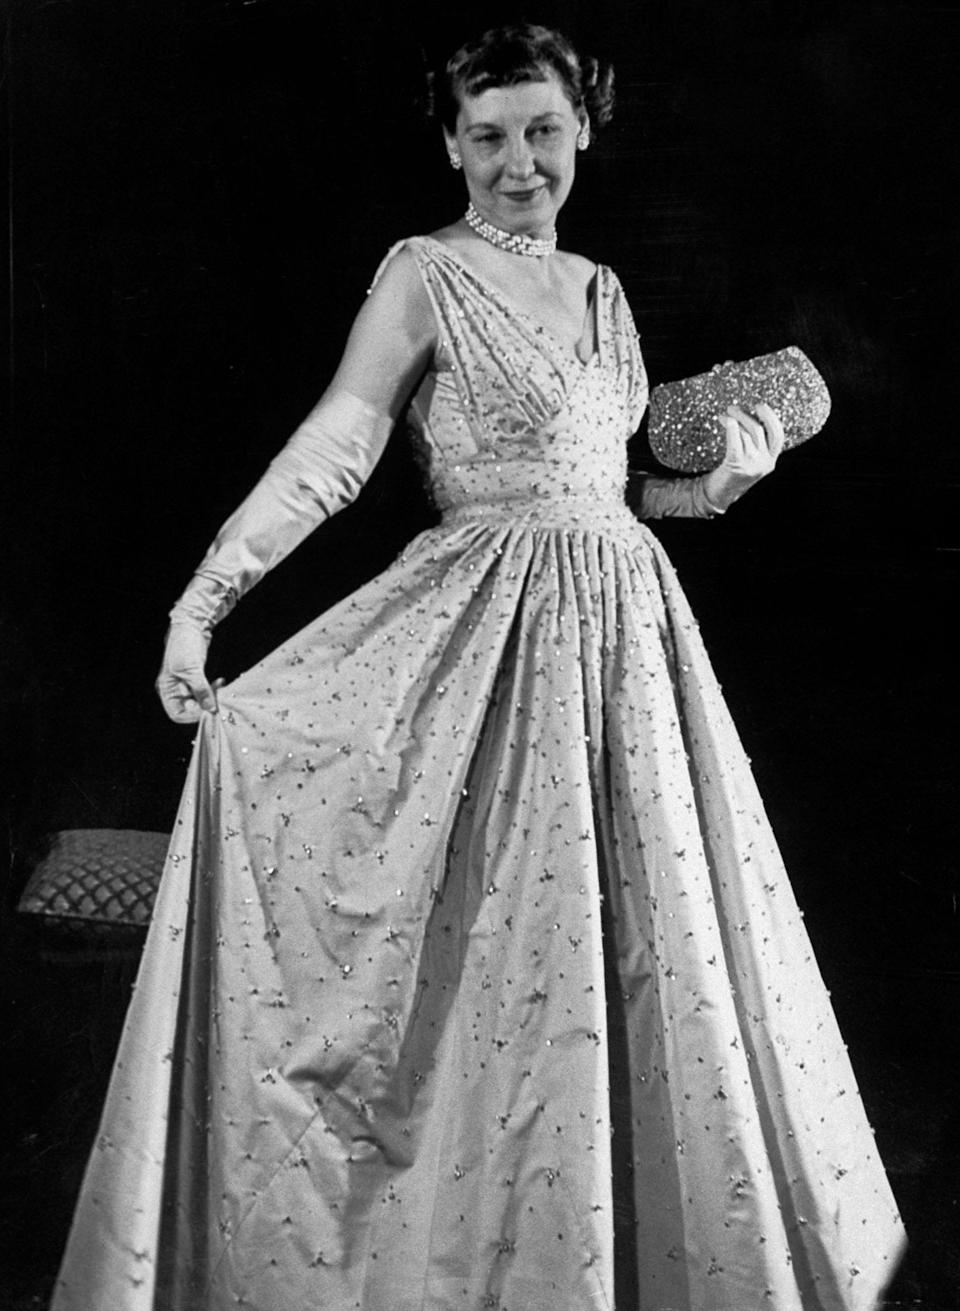 Mamie Eisenhower sported a rose-hued taffeta gown, which was designed by Nettie Rosenstein and featured more than 2,000 hand-embroidered rhinestonesThe LIFE Picture Collection via